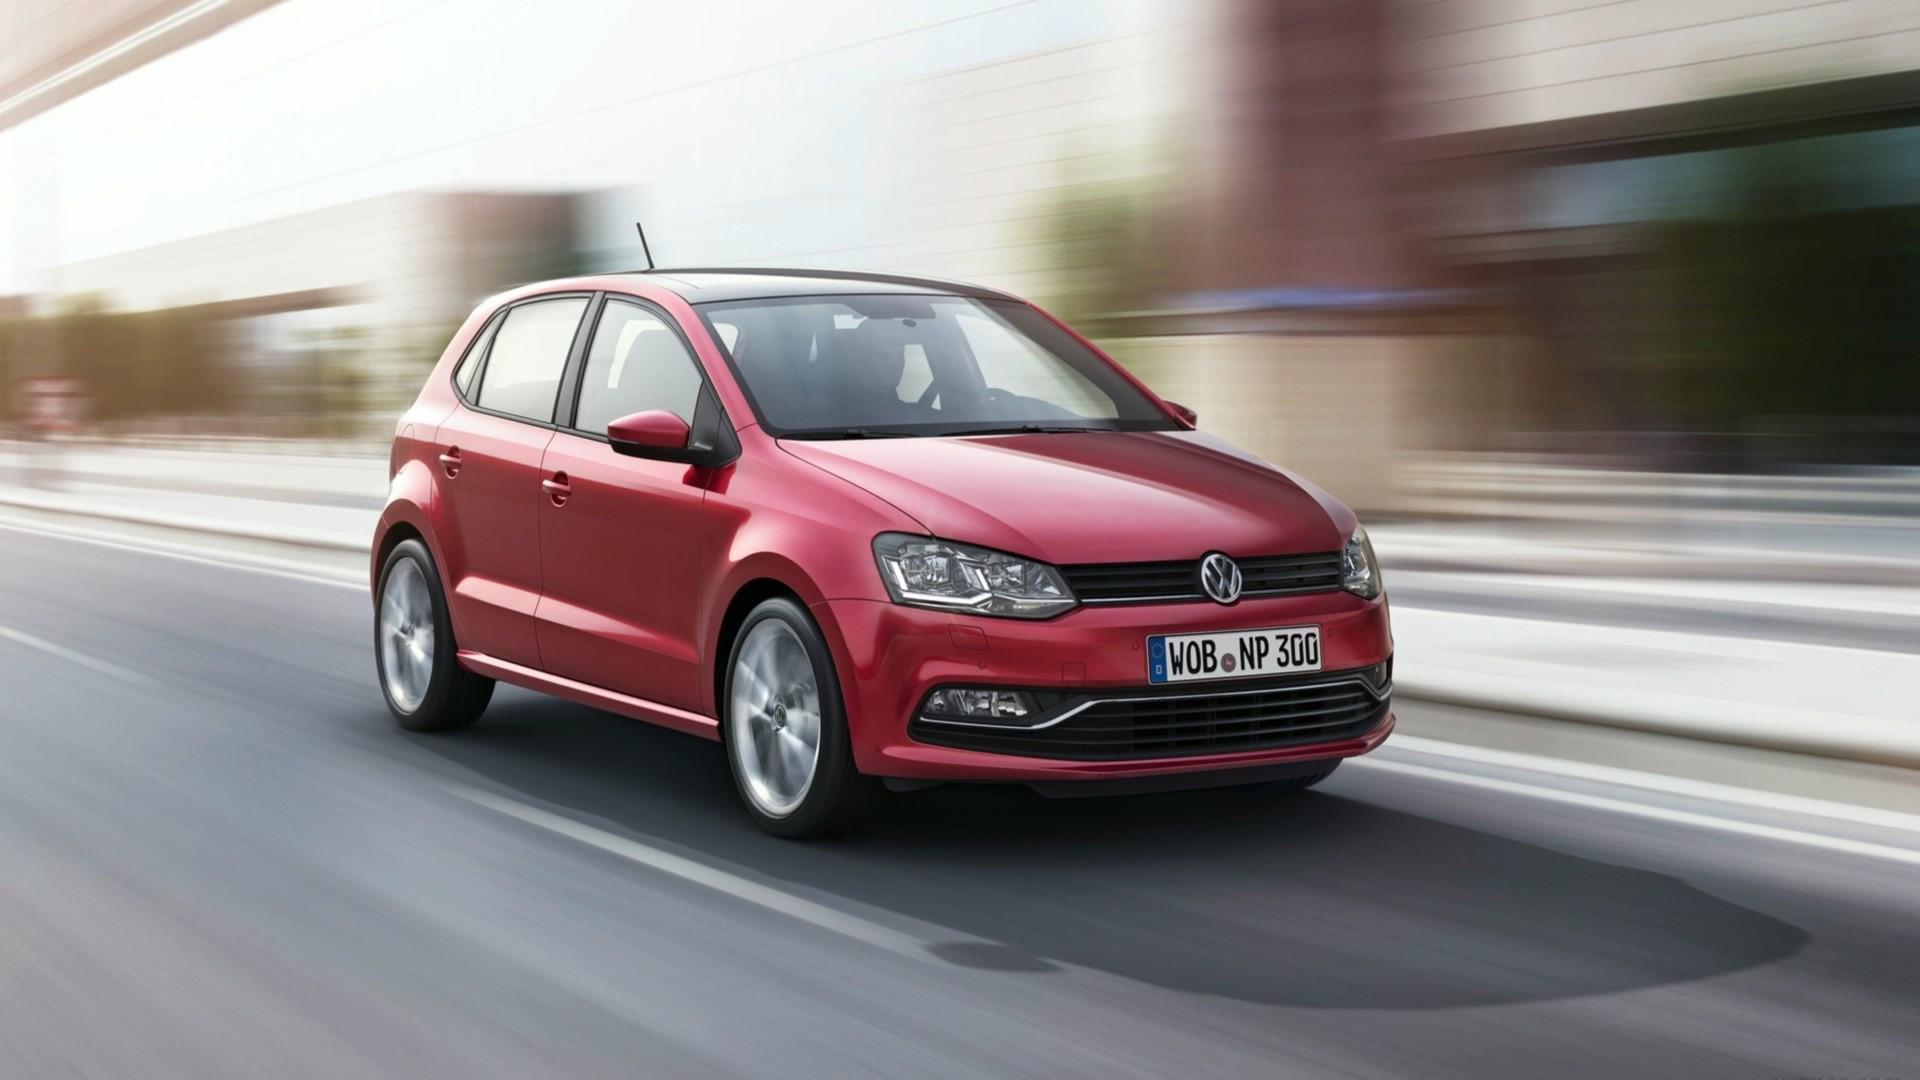 free screensaver wallpapers for volkswagen polo